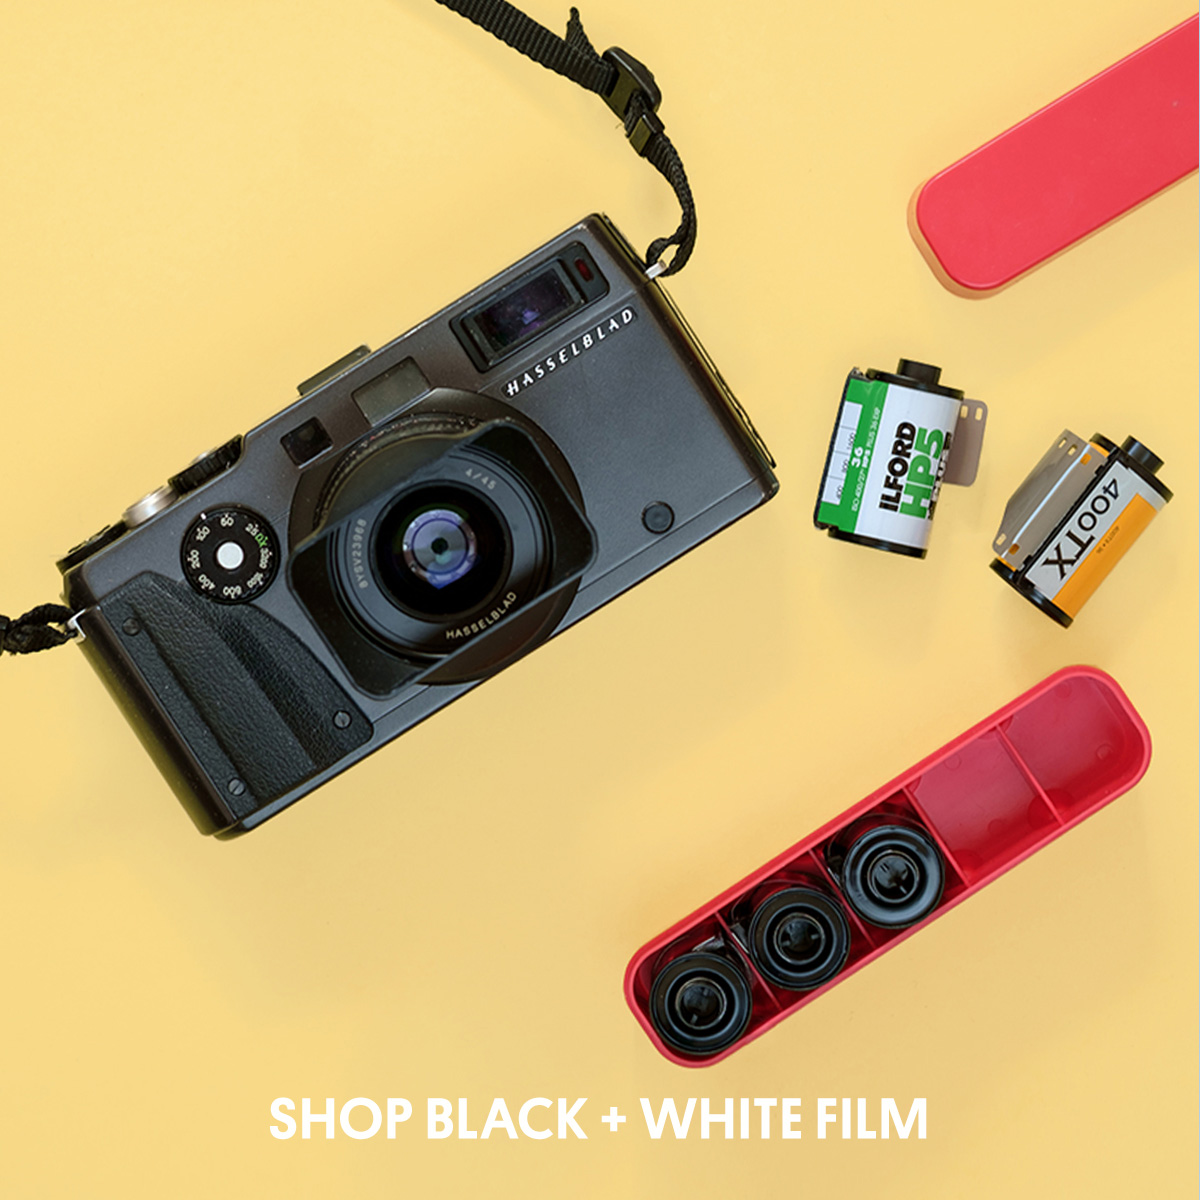 Shop Black and White Film at Parallax Photographic